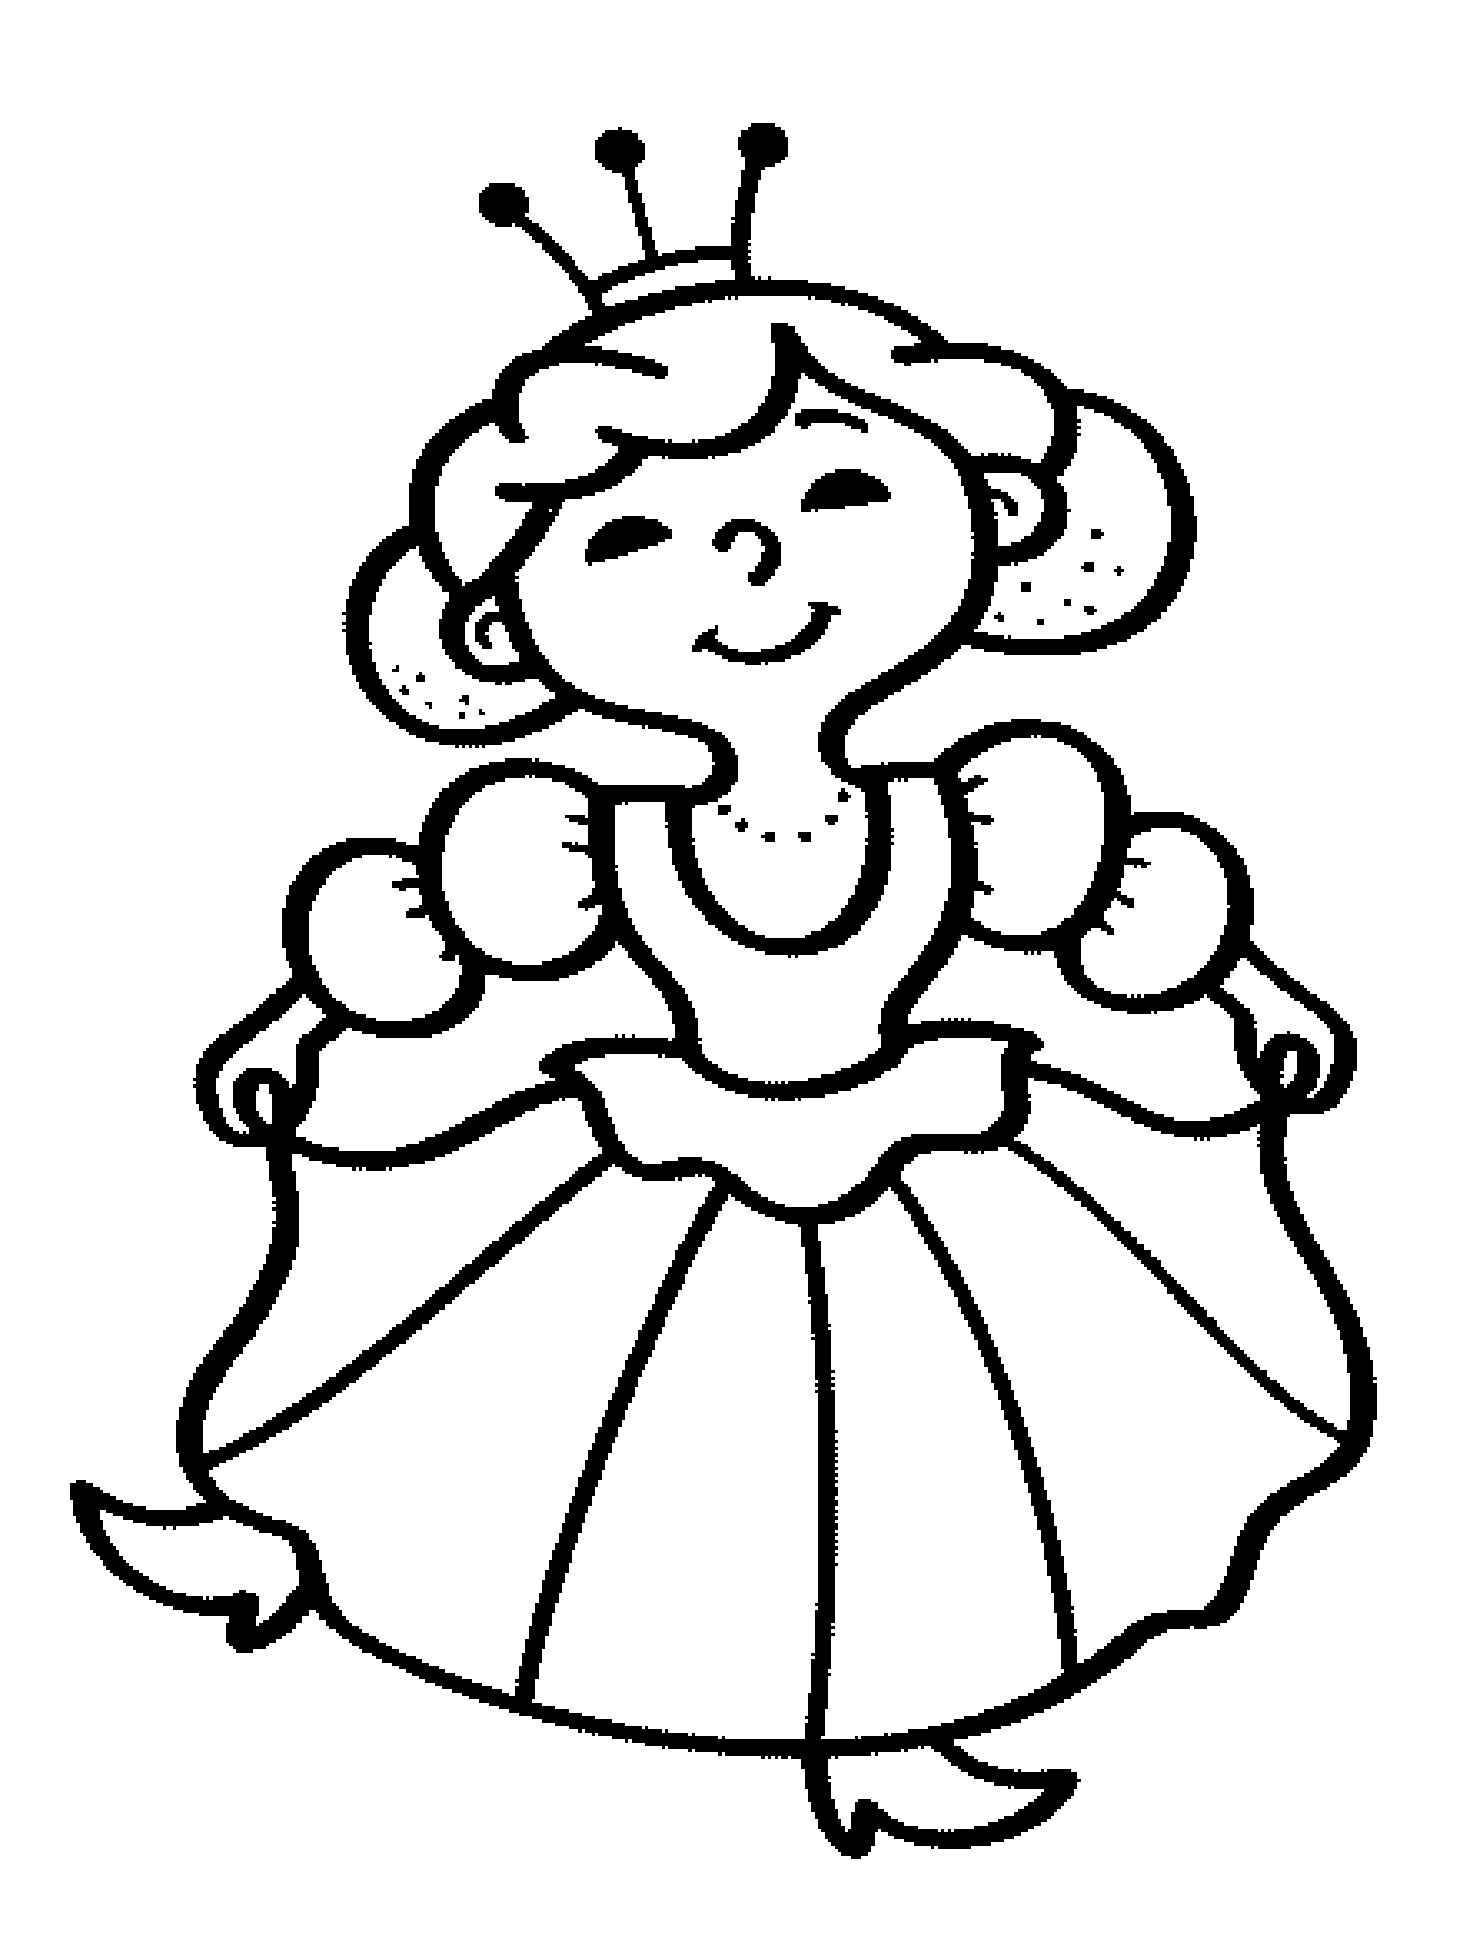 coloring pages queen queen coloring page free printable coloring pages coloring pages queen